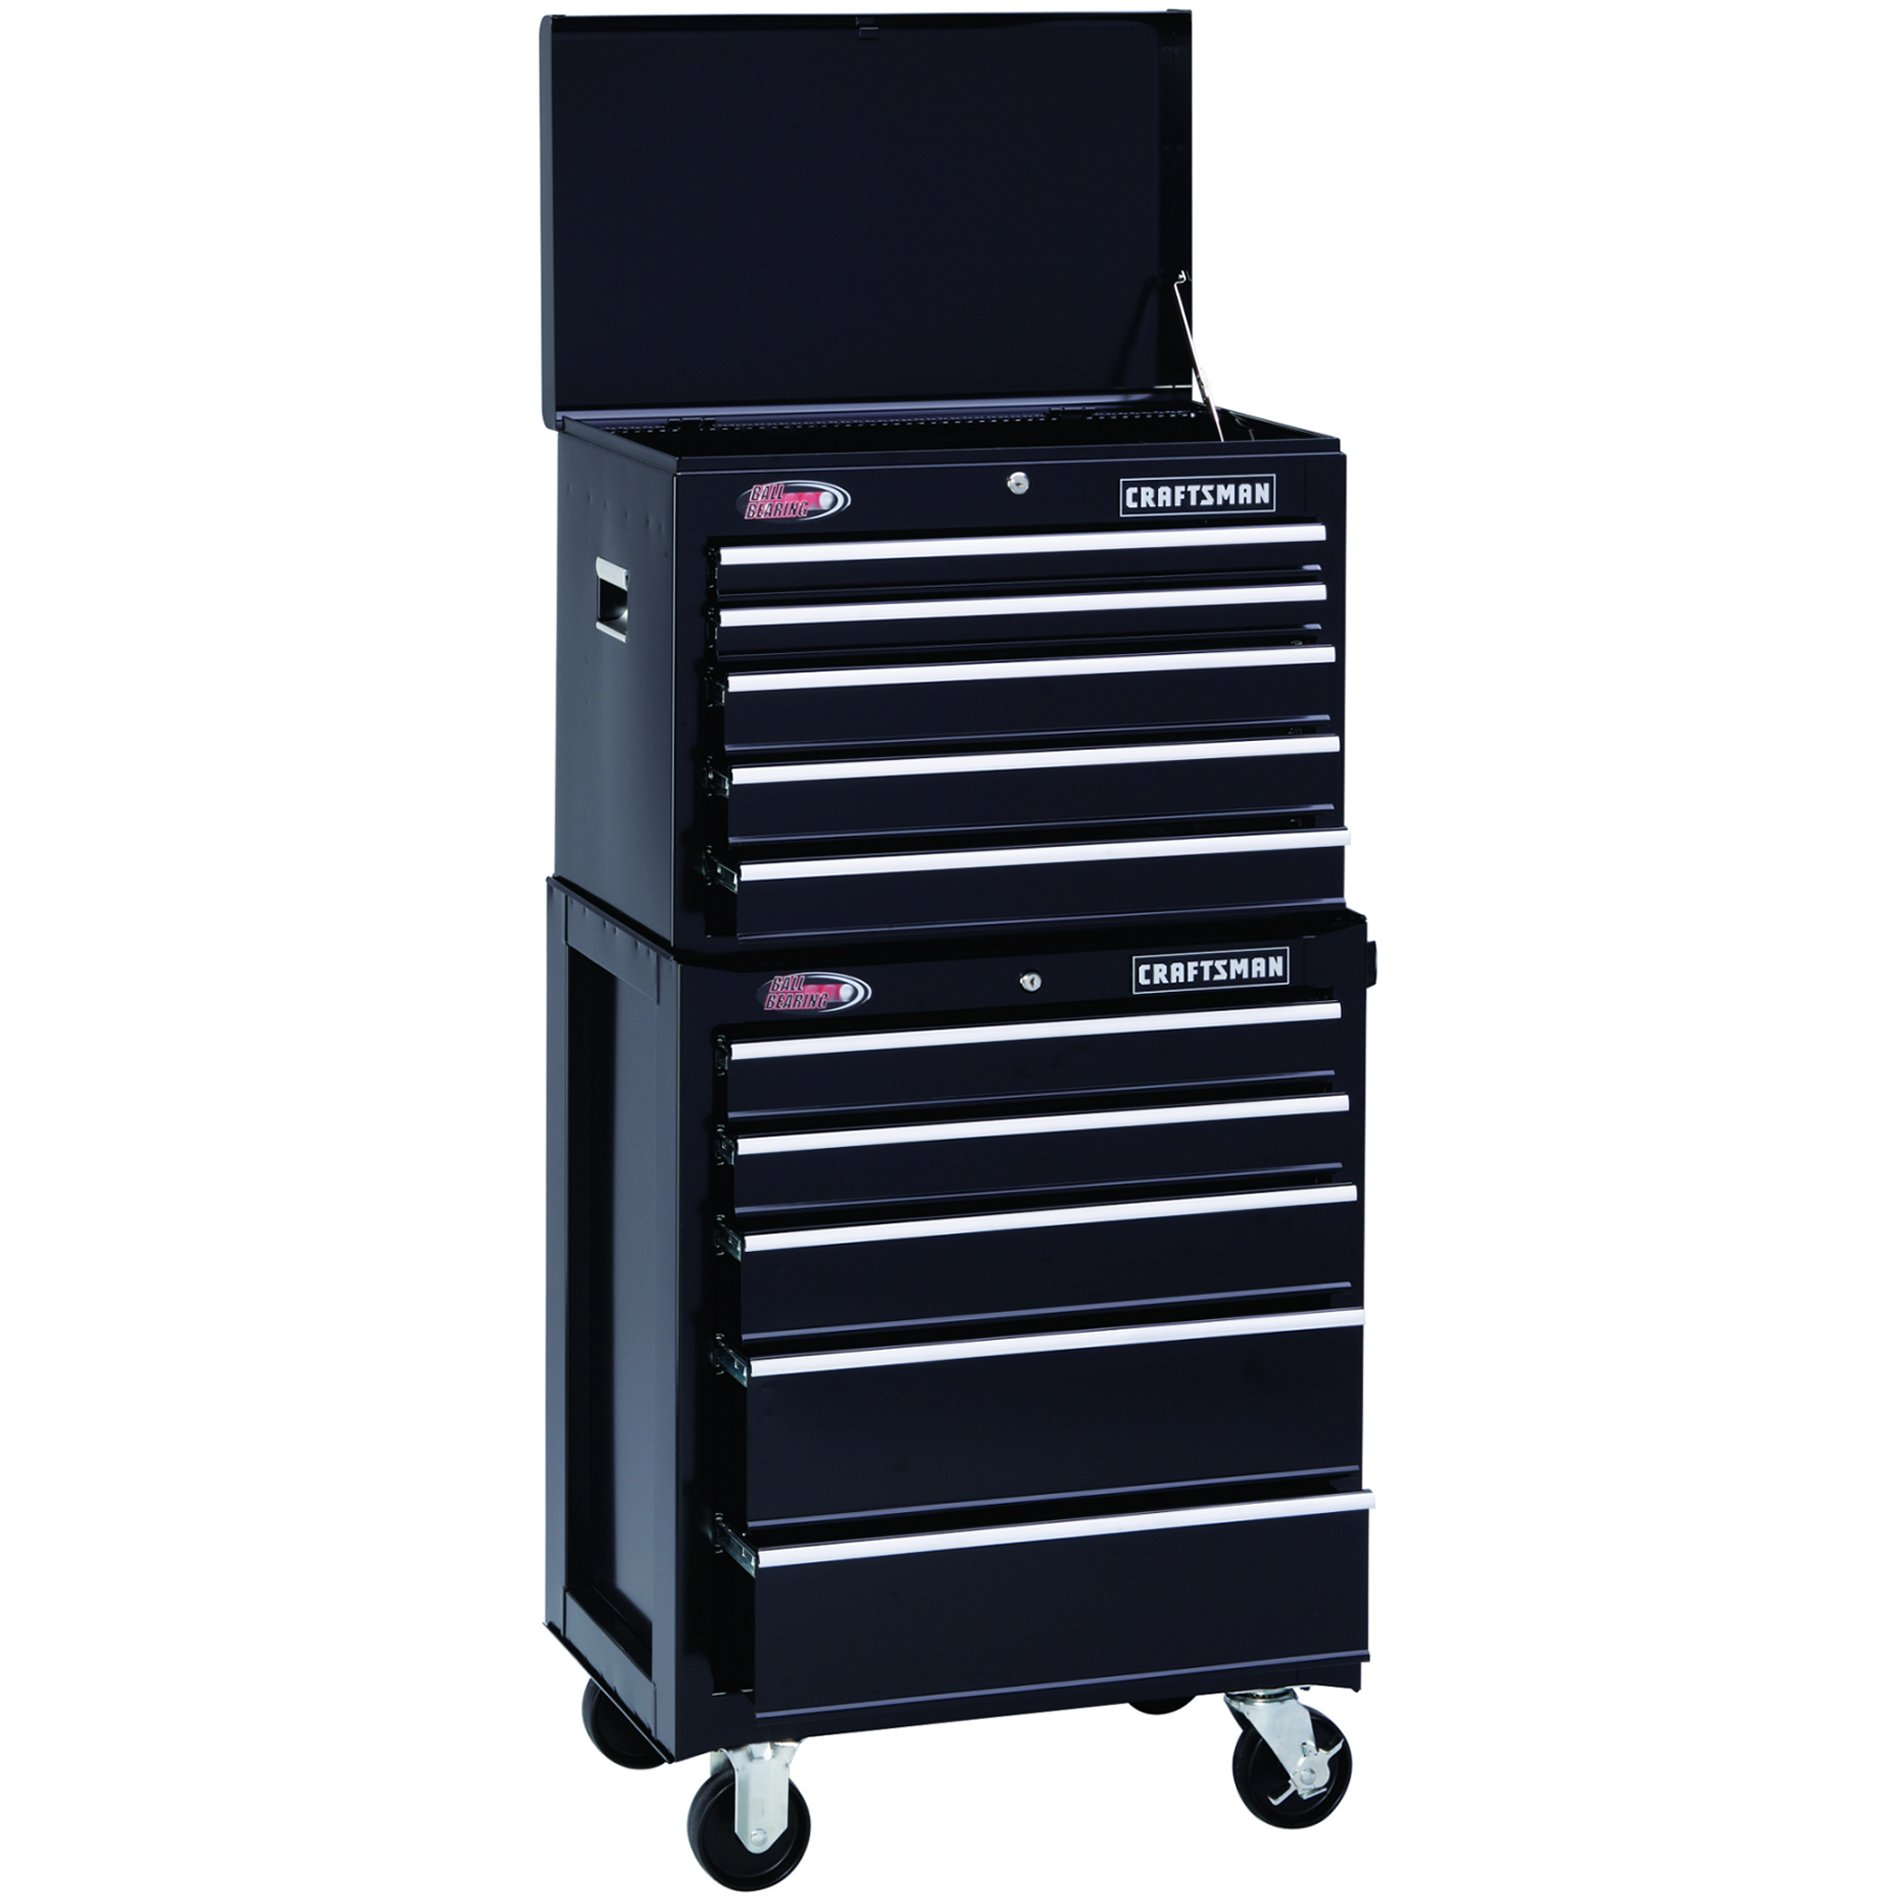 "Craftsman 26"" Wide 5-Drawer Ball-Bearing Top Chest - Black"